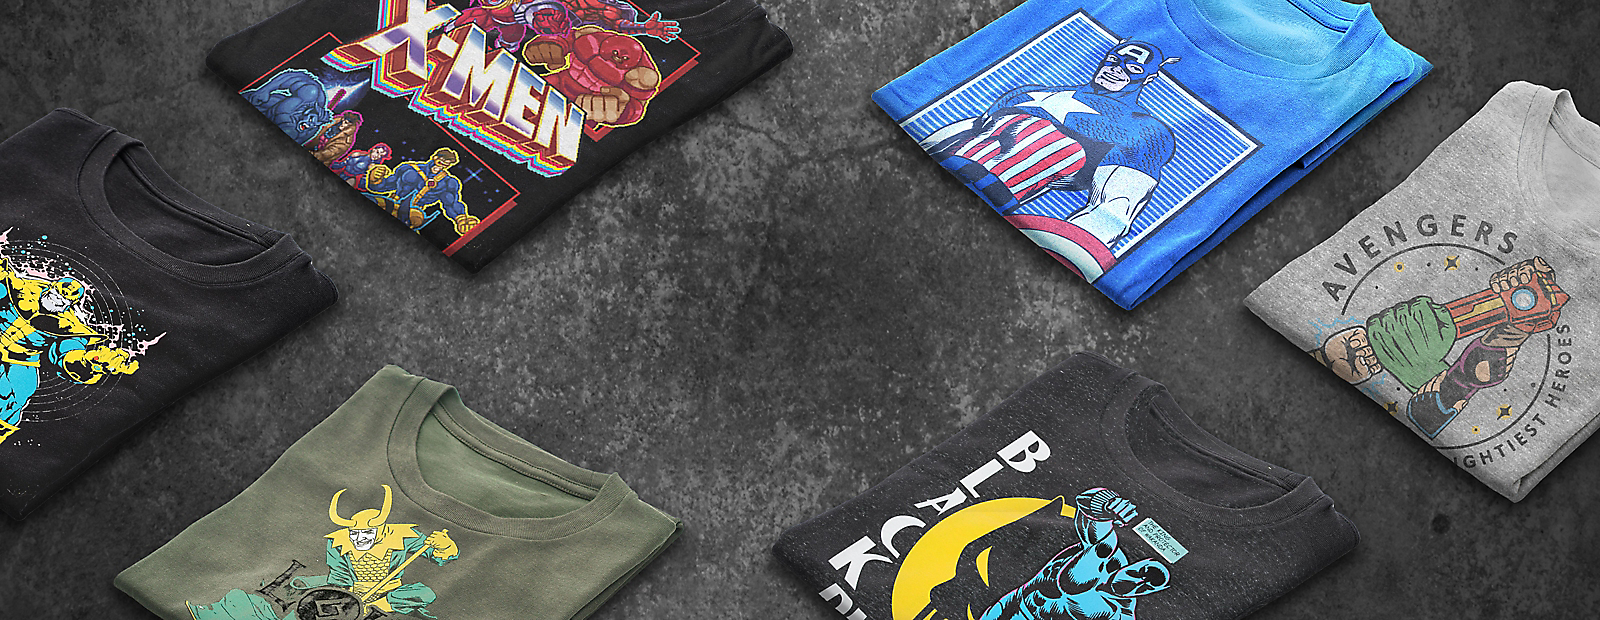 Dress Like a Hero with Character T-Shirts Shop Clothing